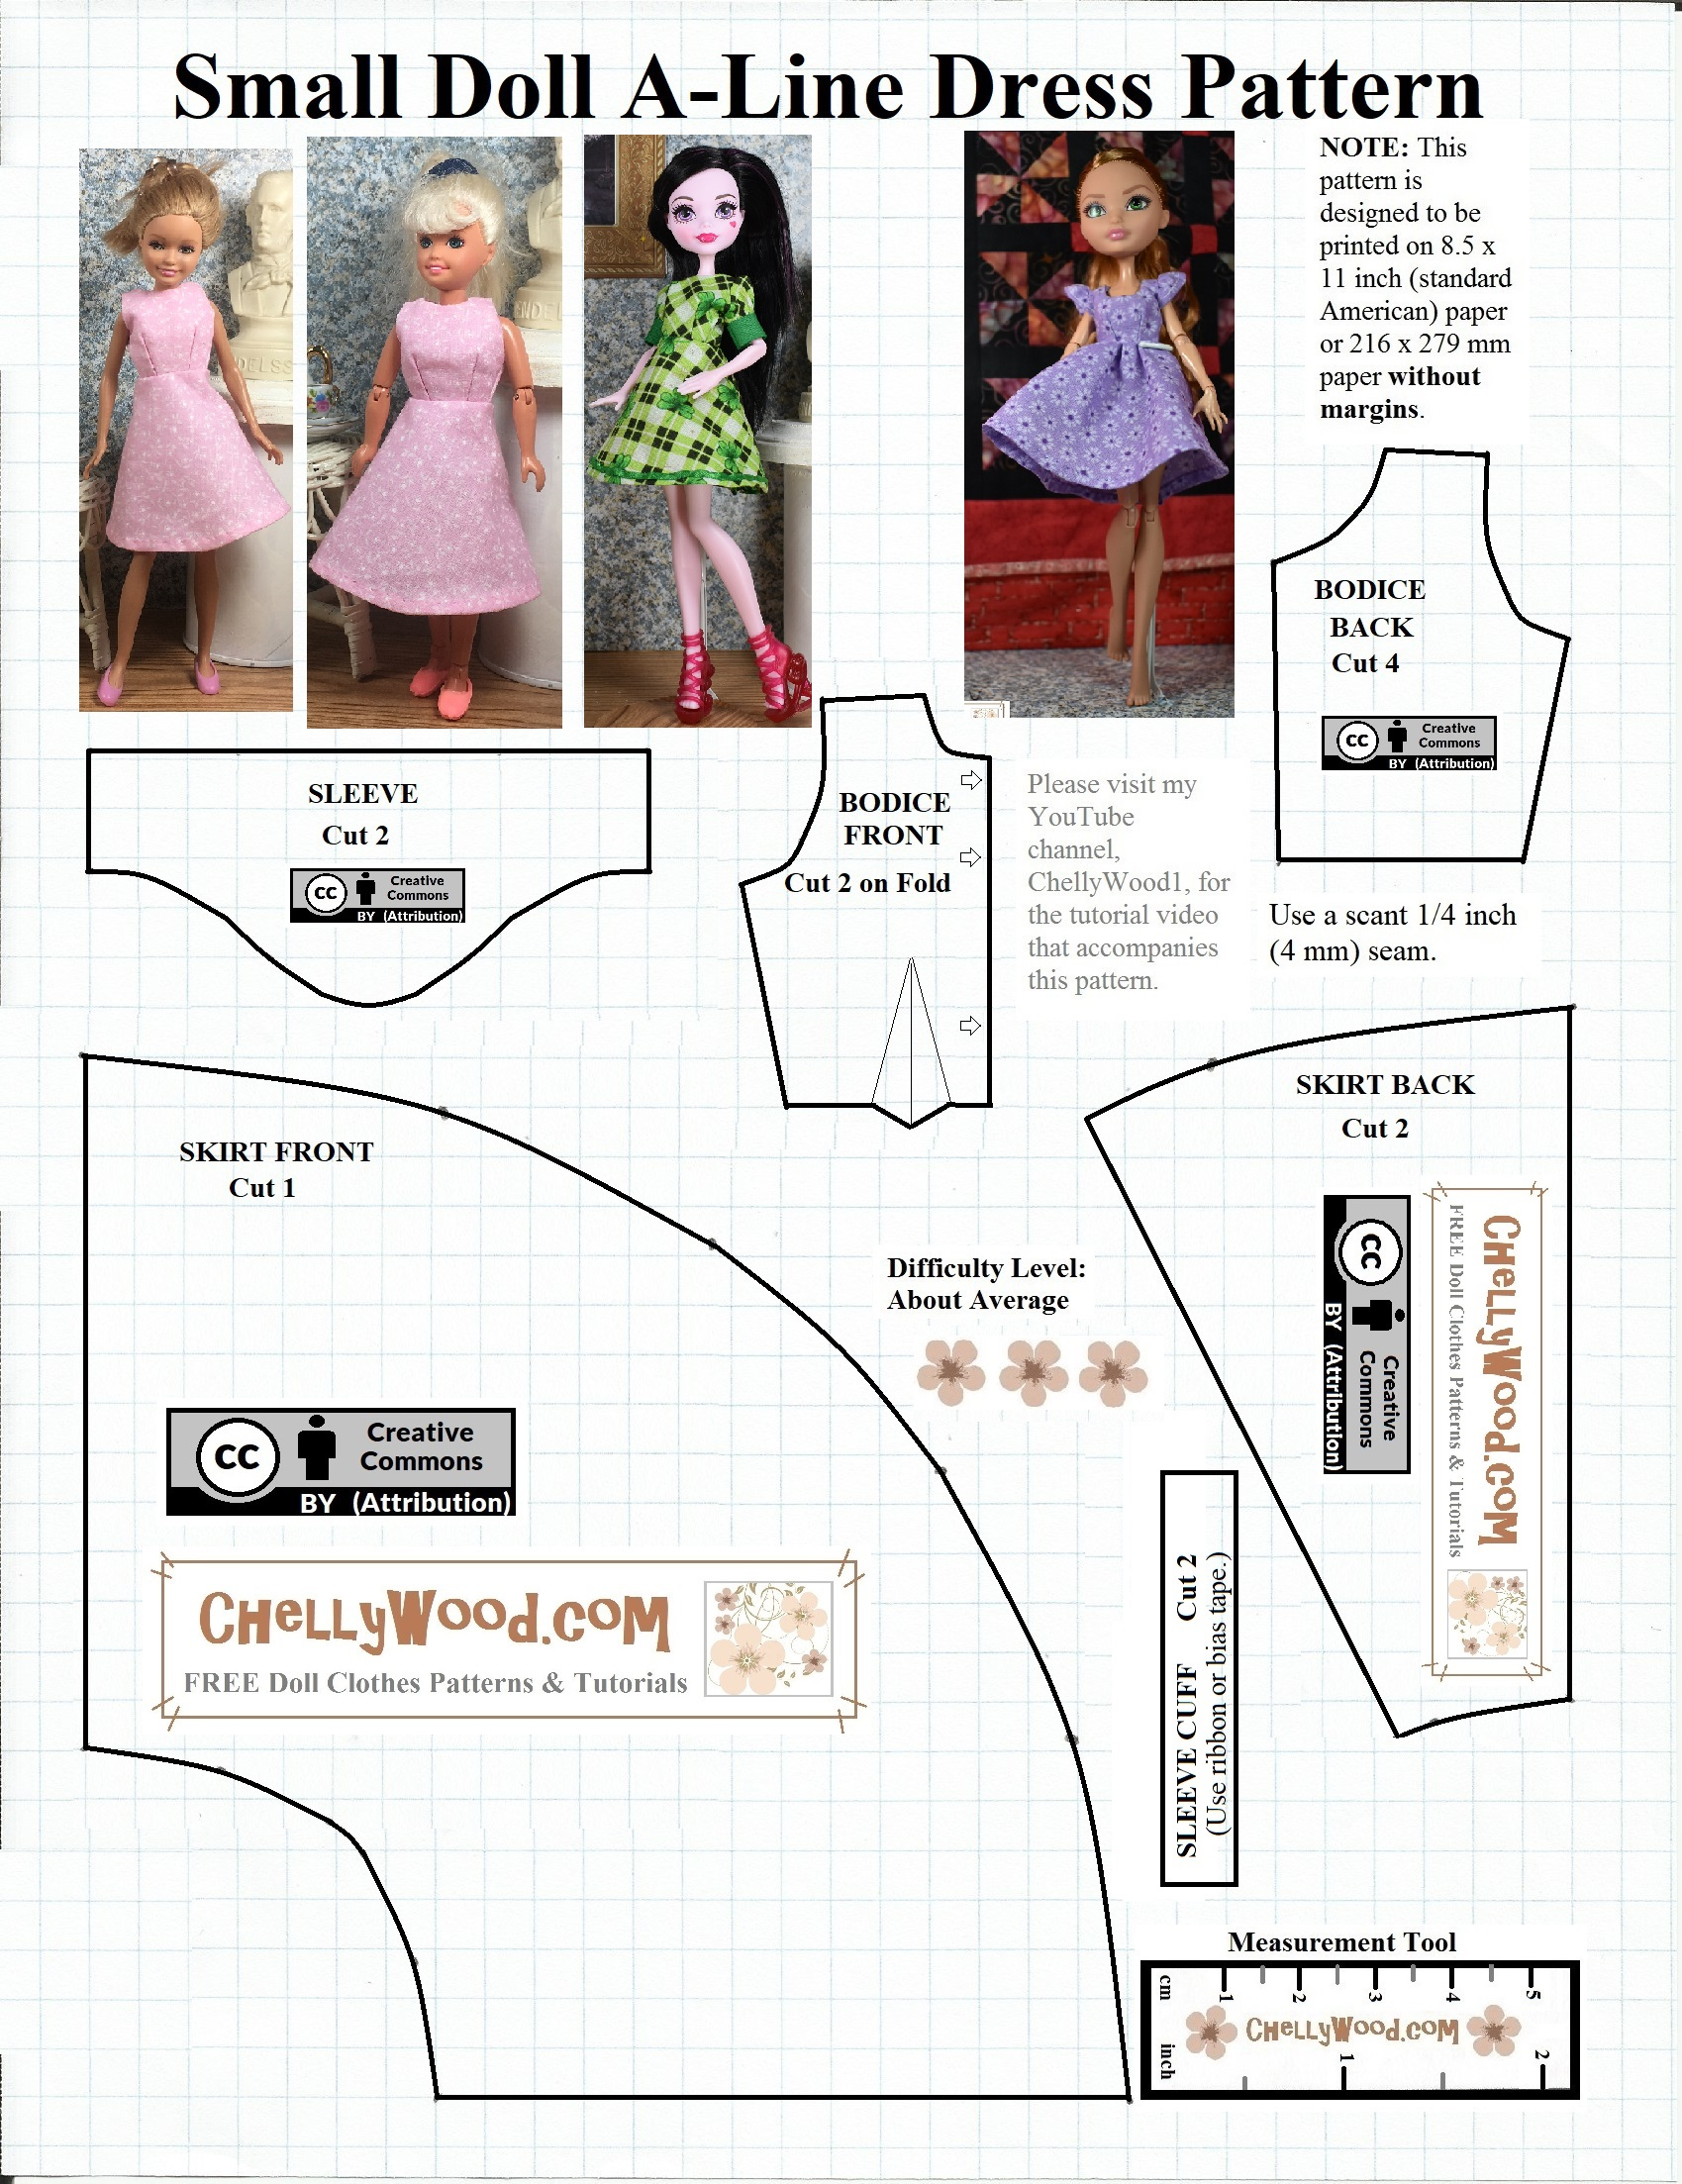 Daily patterns chelly wood dress pattern for monster high ever after high dolls free doll clothes sewing patternsmfogelsongplease visit chellywood jeuxipadfo Gallery